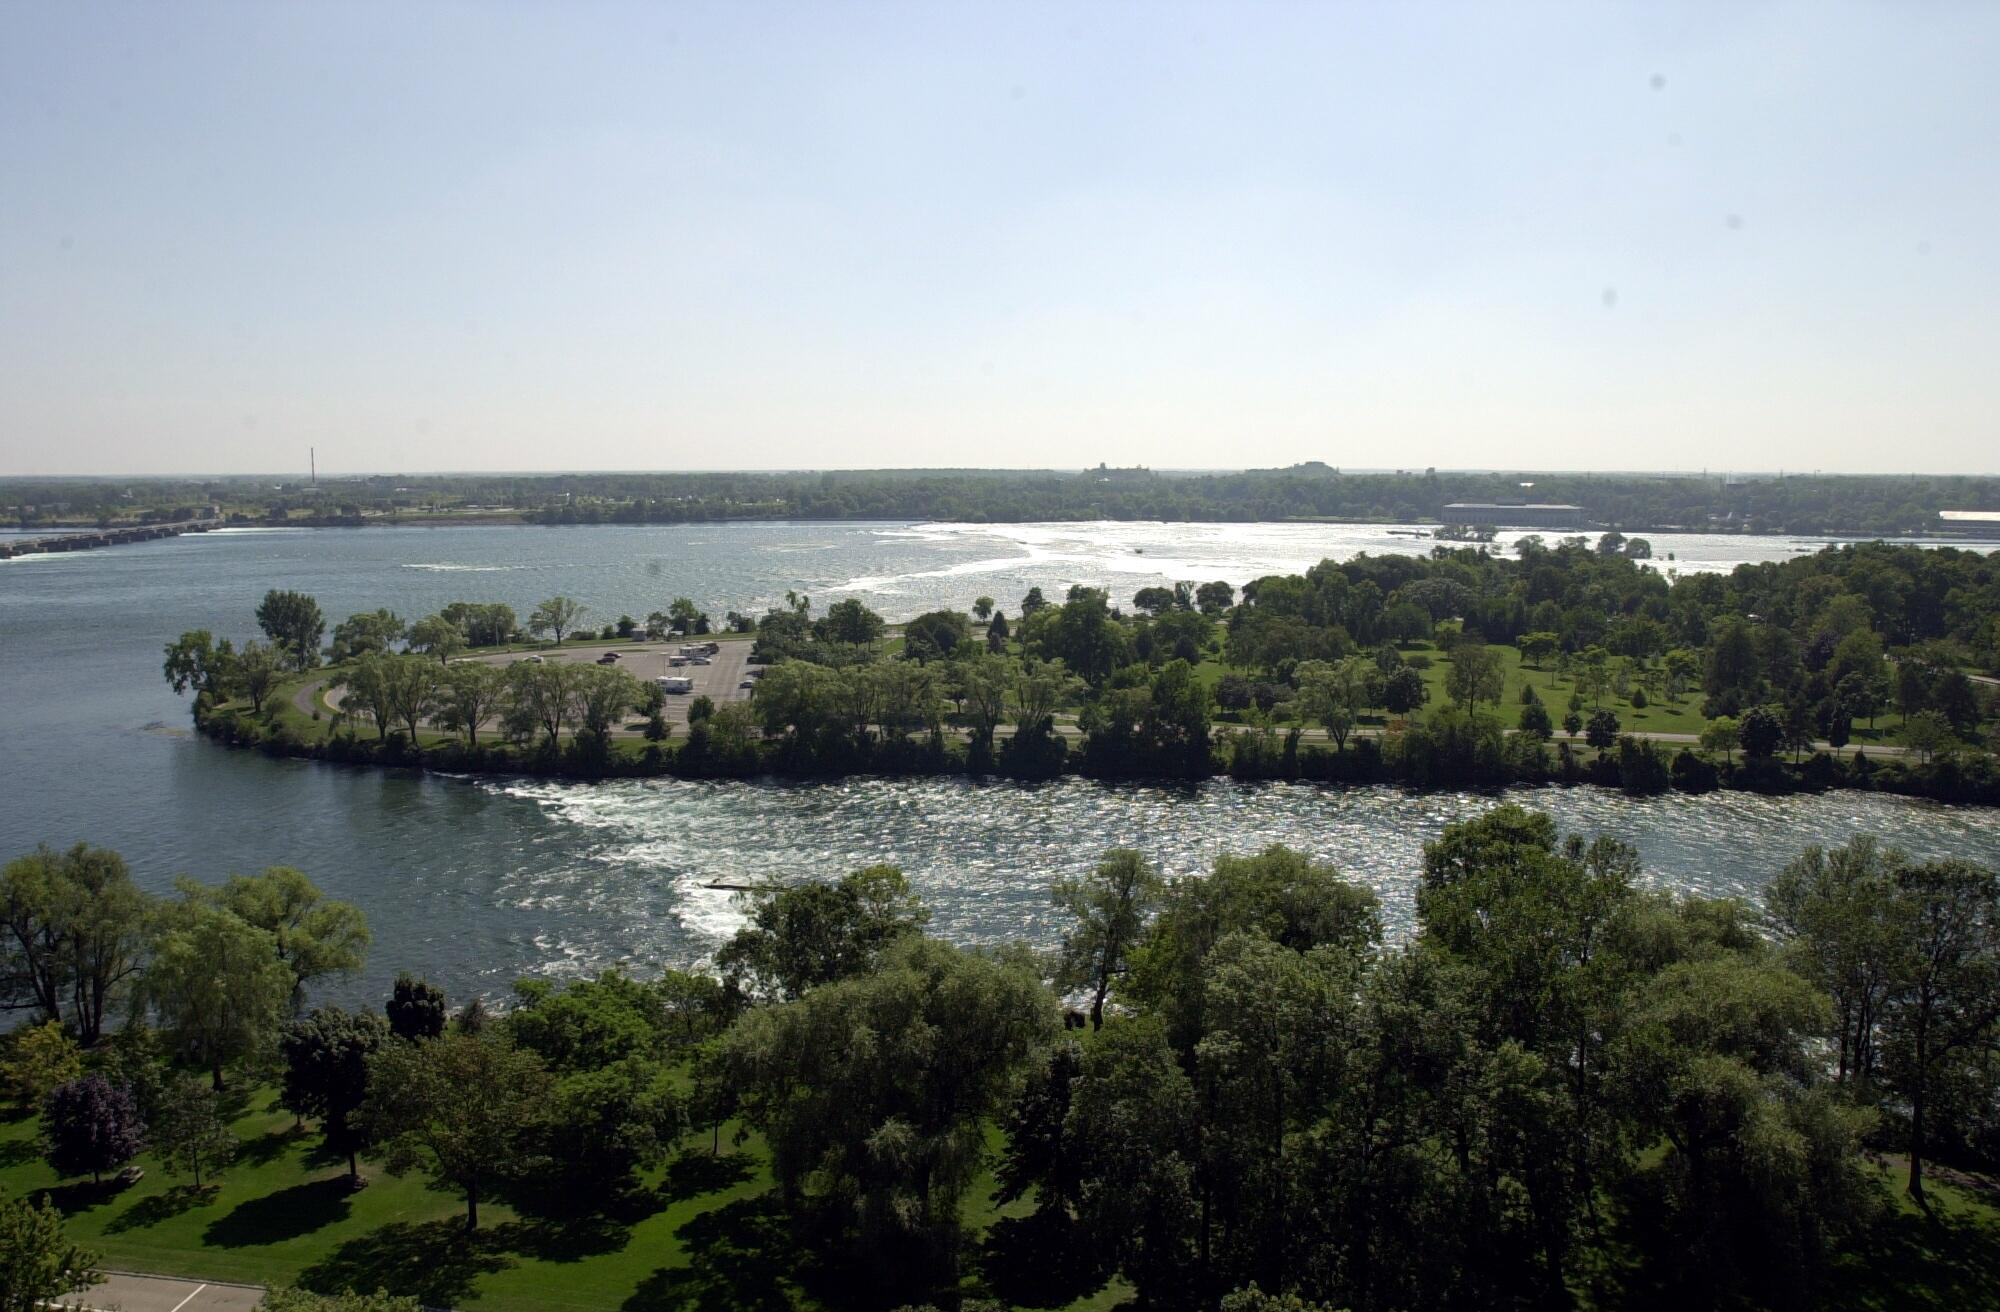 Niagara Falls officials argued that a tourist lodge would destroy the natural beauty of Goat Island. (James P. McCoy/News file photo)